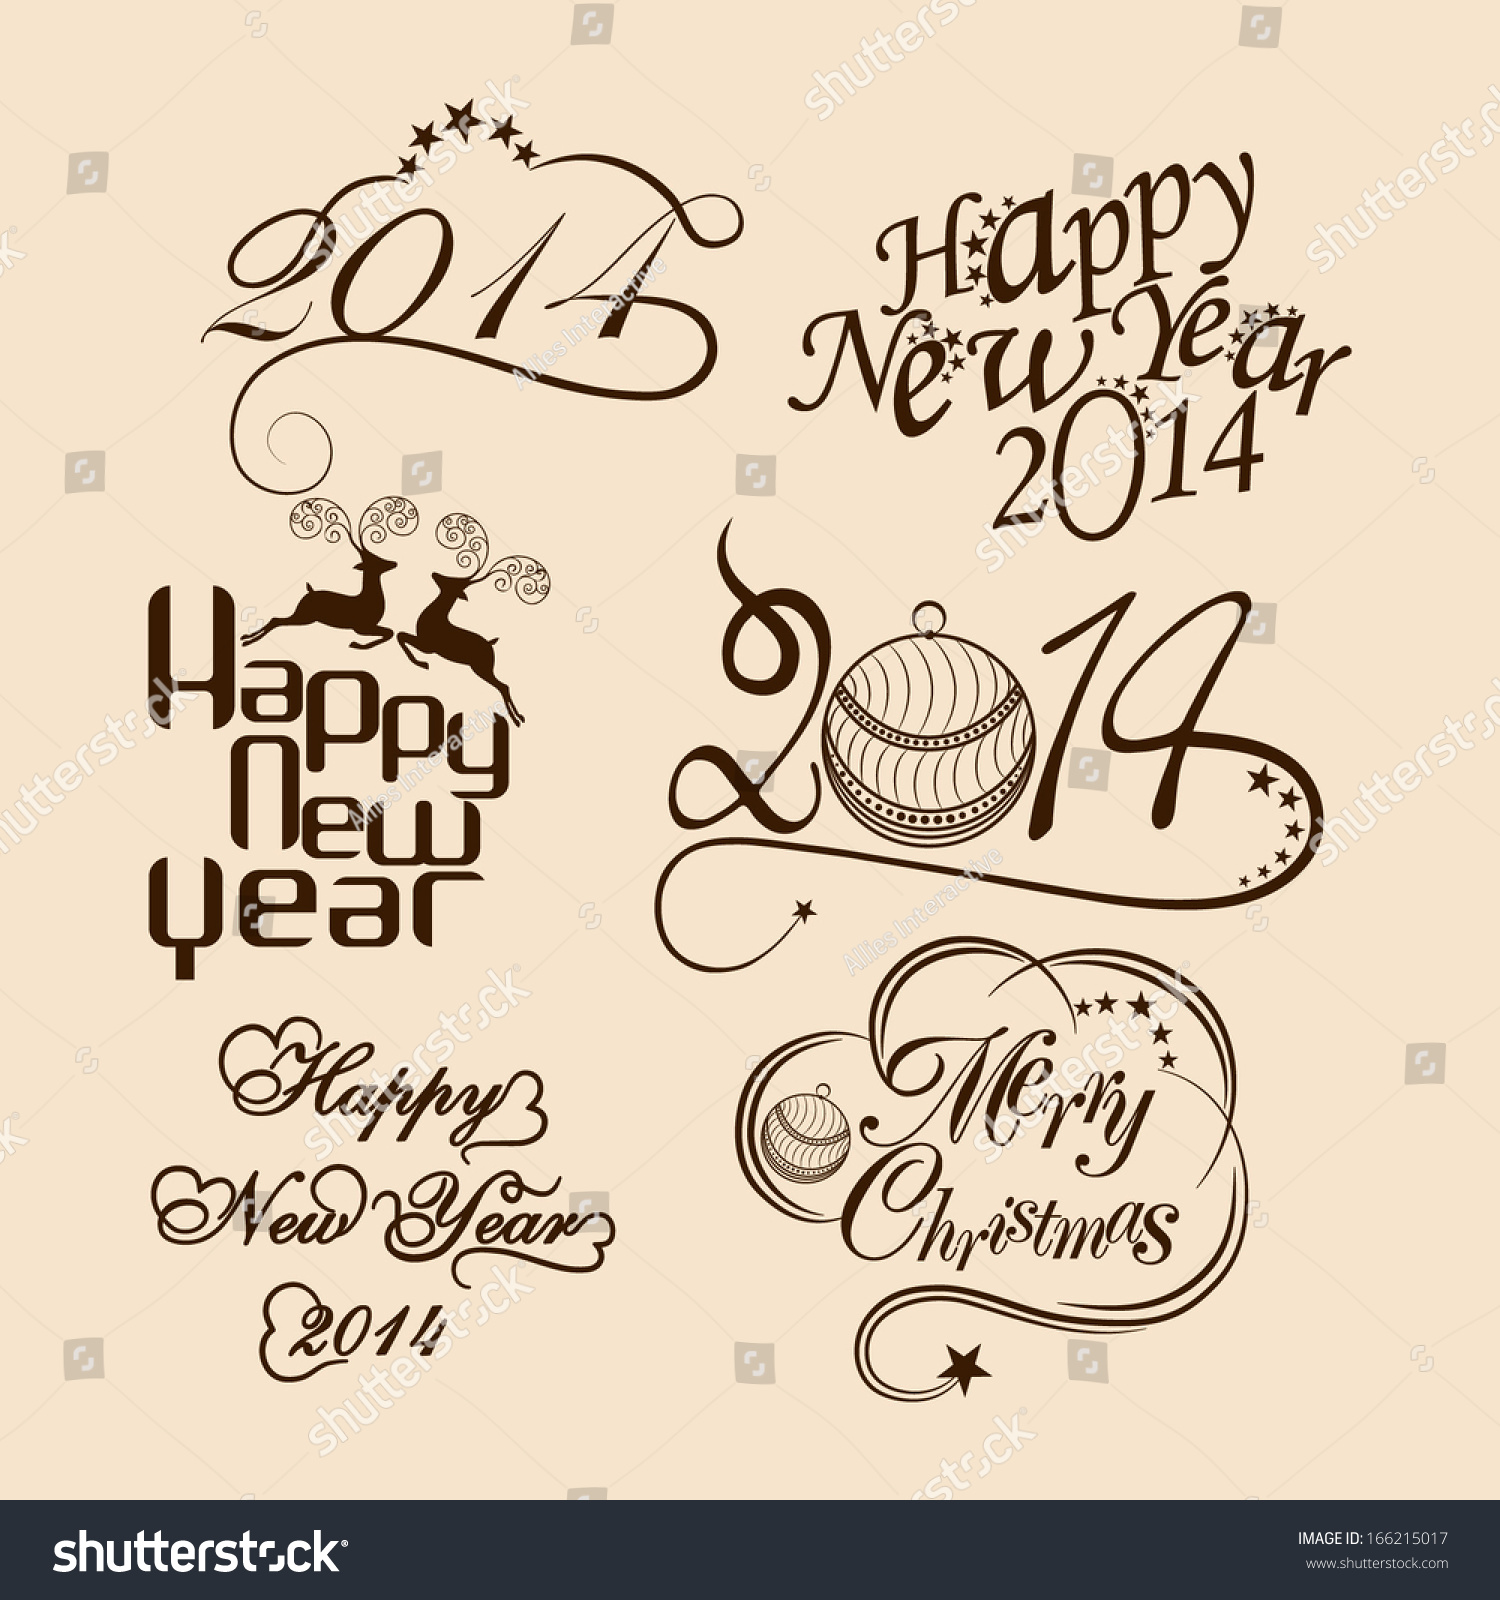 Royalty-free Happy New Year 2014 and Merry Christmas… #166215017 ...